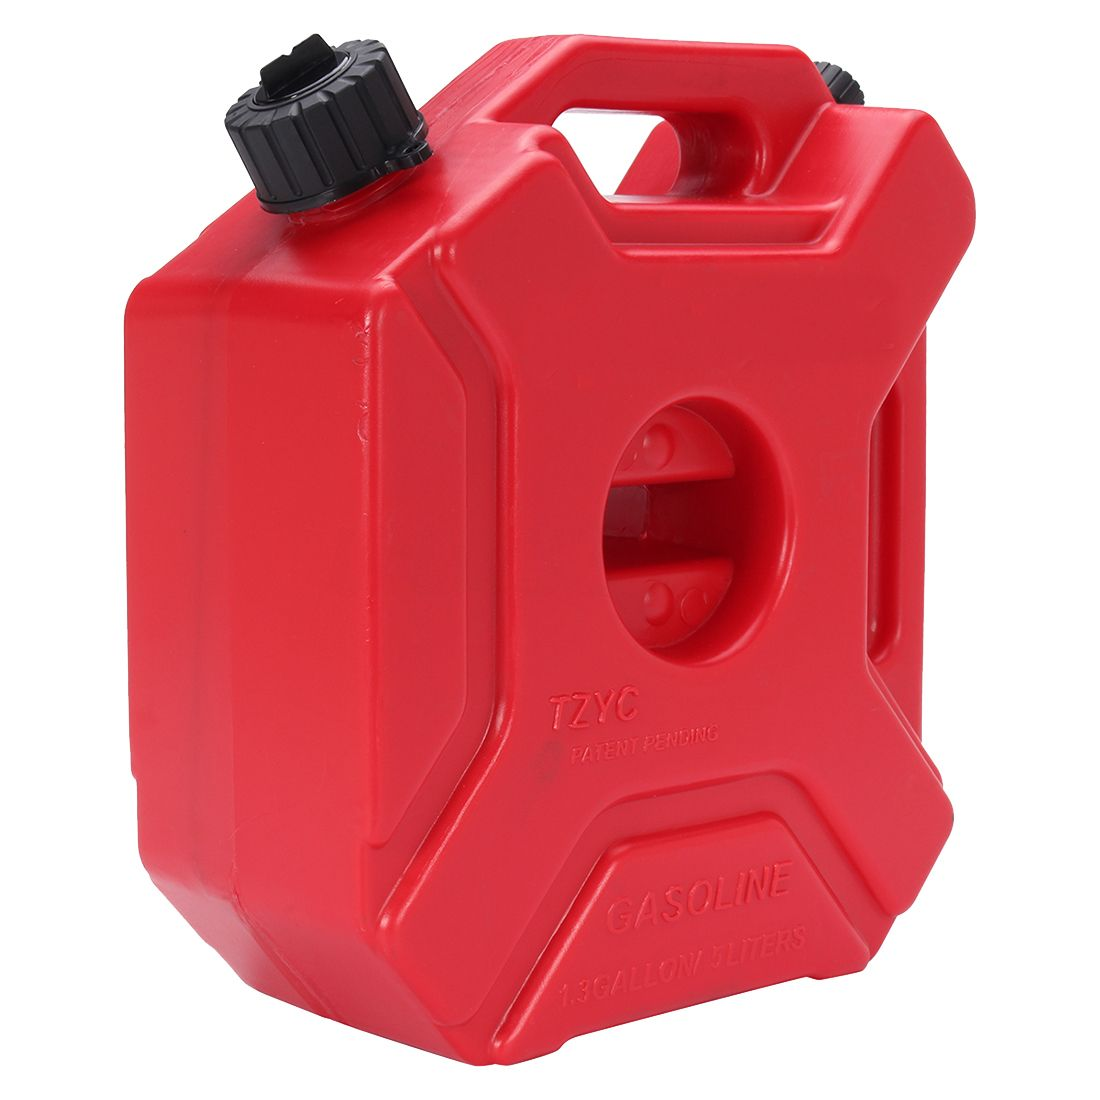 Motorcycle fuel container menards chainsaw rental